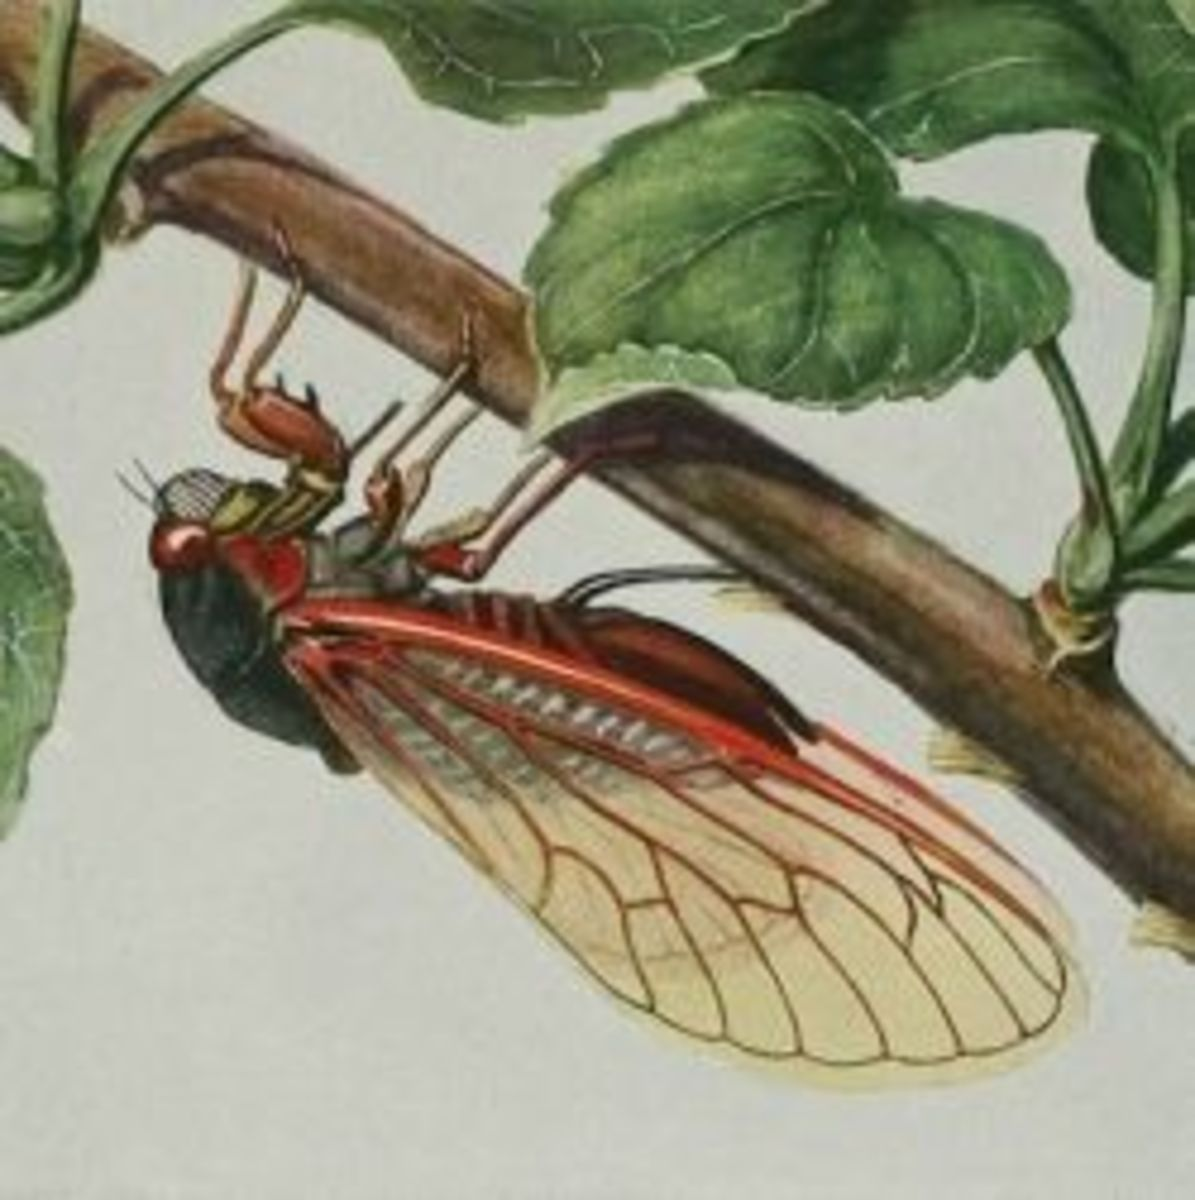 Cicada Facts, Fun, and Photos